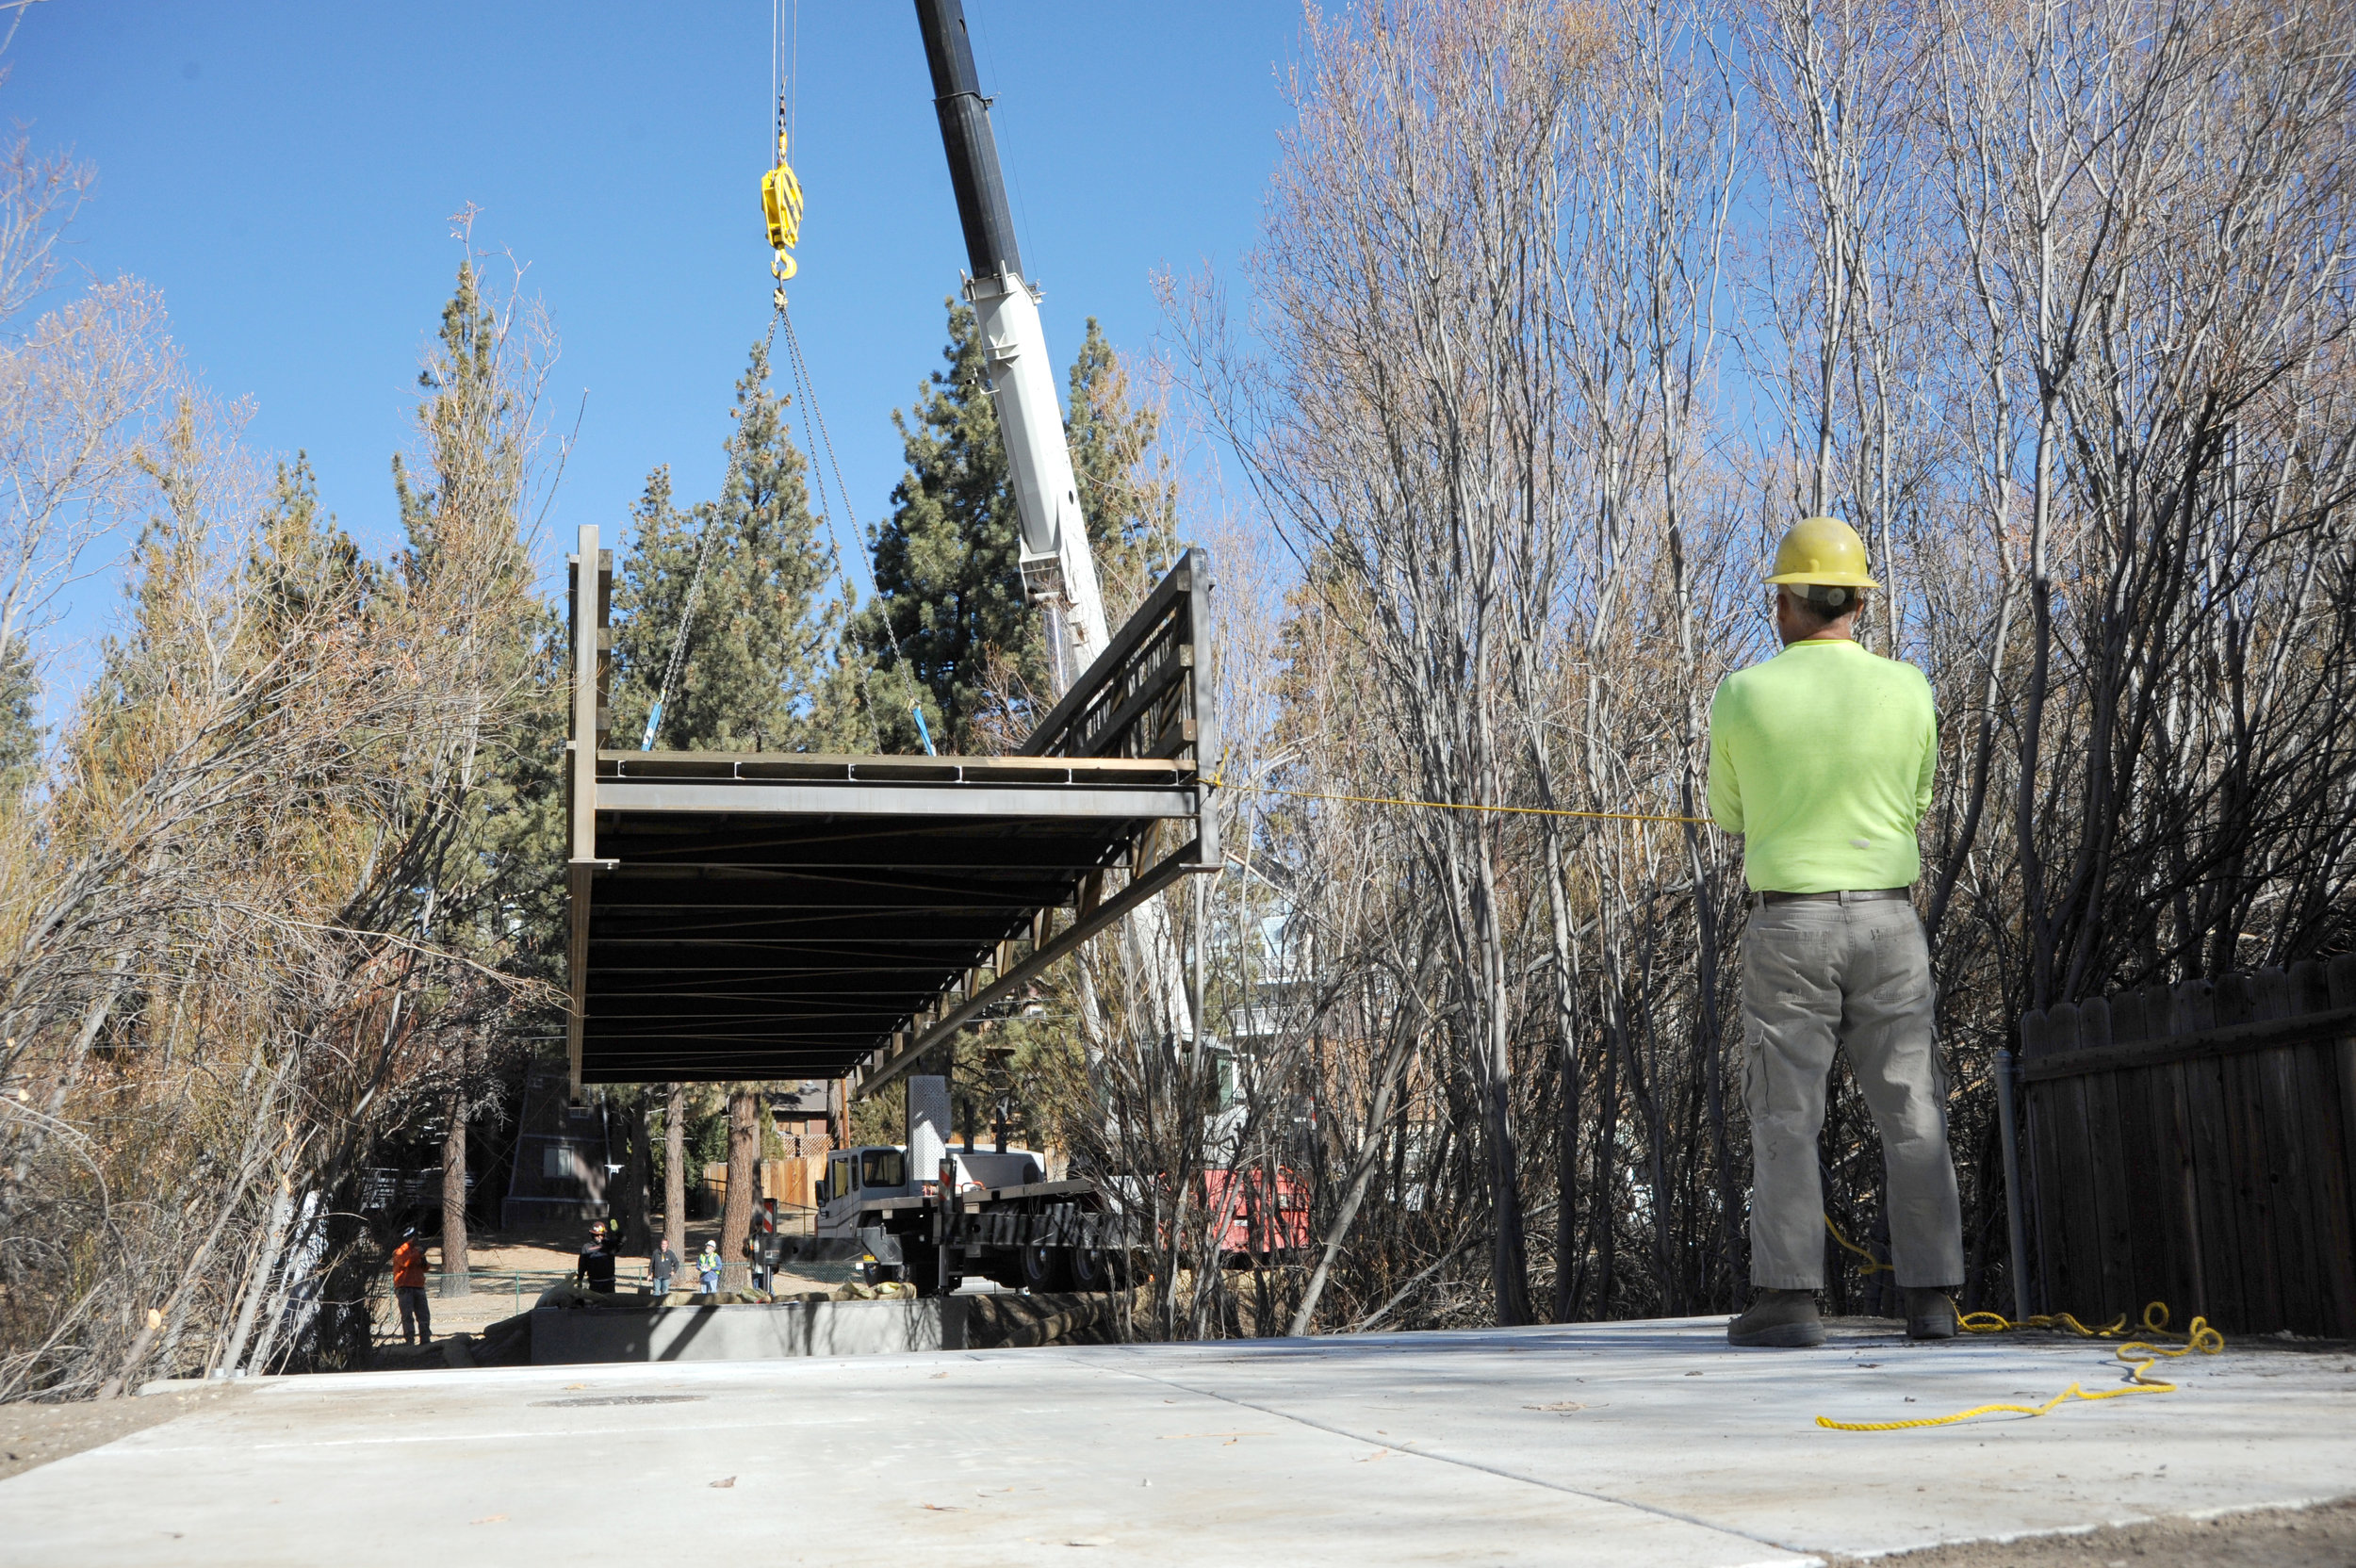 Gustavo Marquez, right, helps guide a 25,000-pound bridge over Rathbun Creek Dec. 15, 2017. The city of Big Bear Lake installed the 64-foot bridge to connect two existing segments of Rathbun Creek Trail.